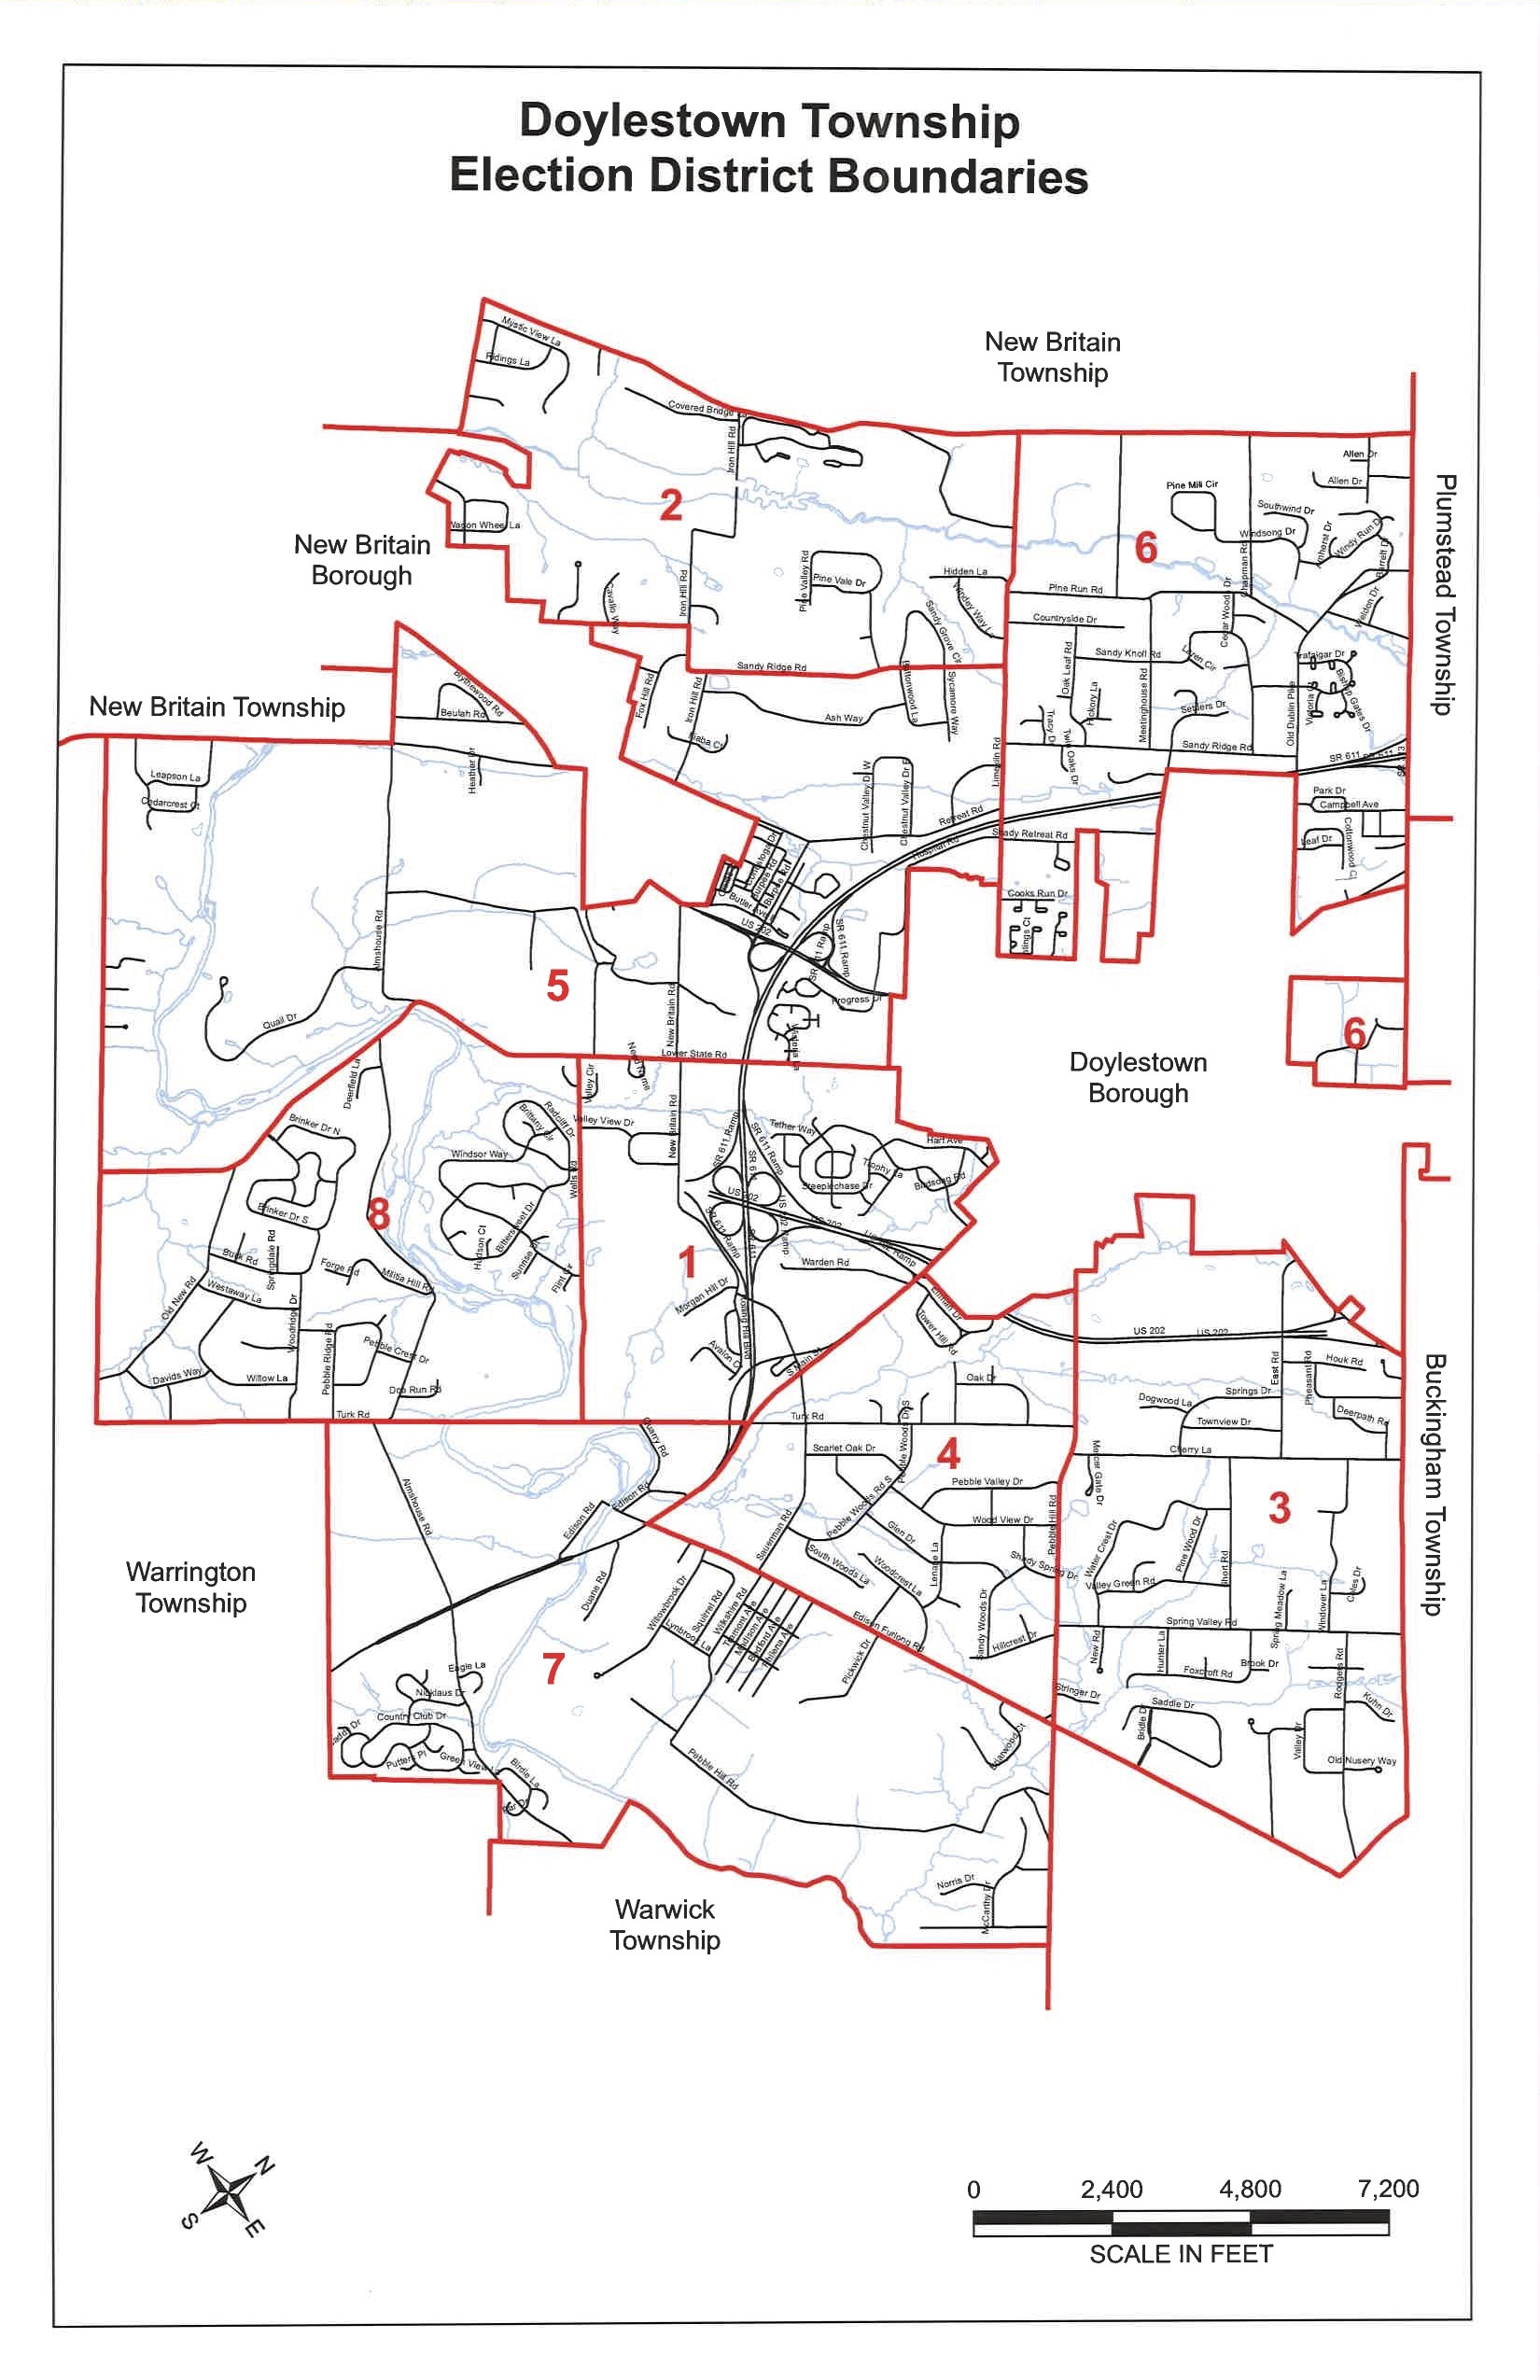 DoylestownTwpElectionDistricts.jpg